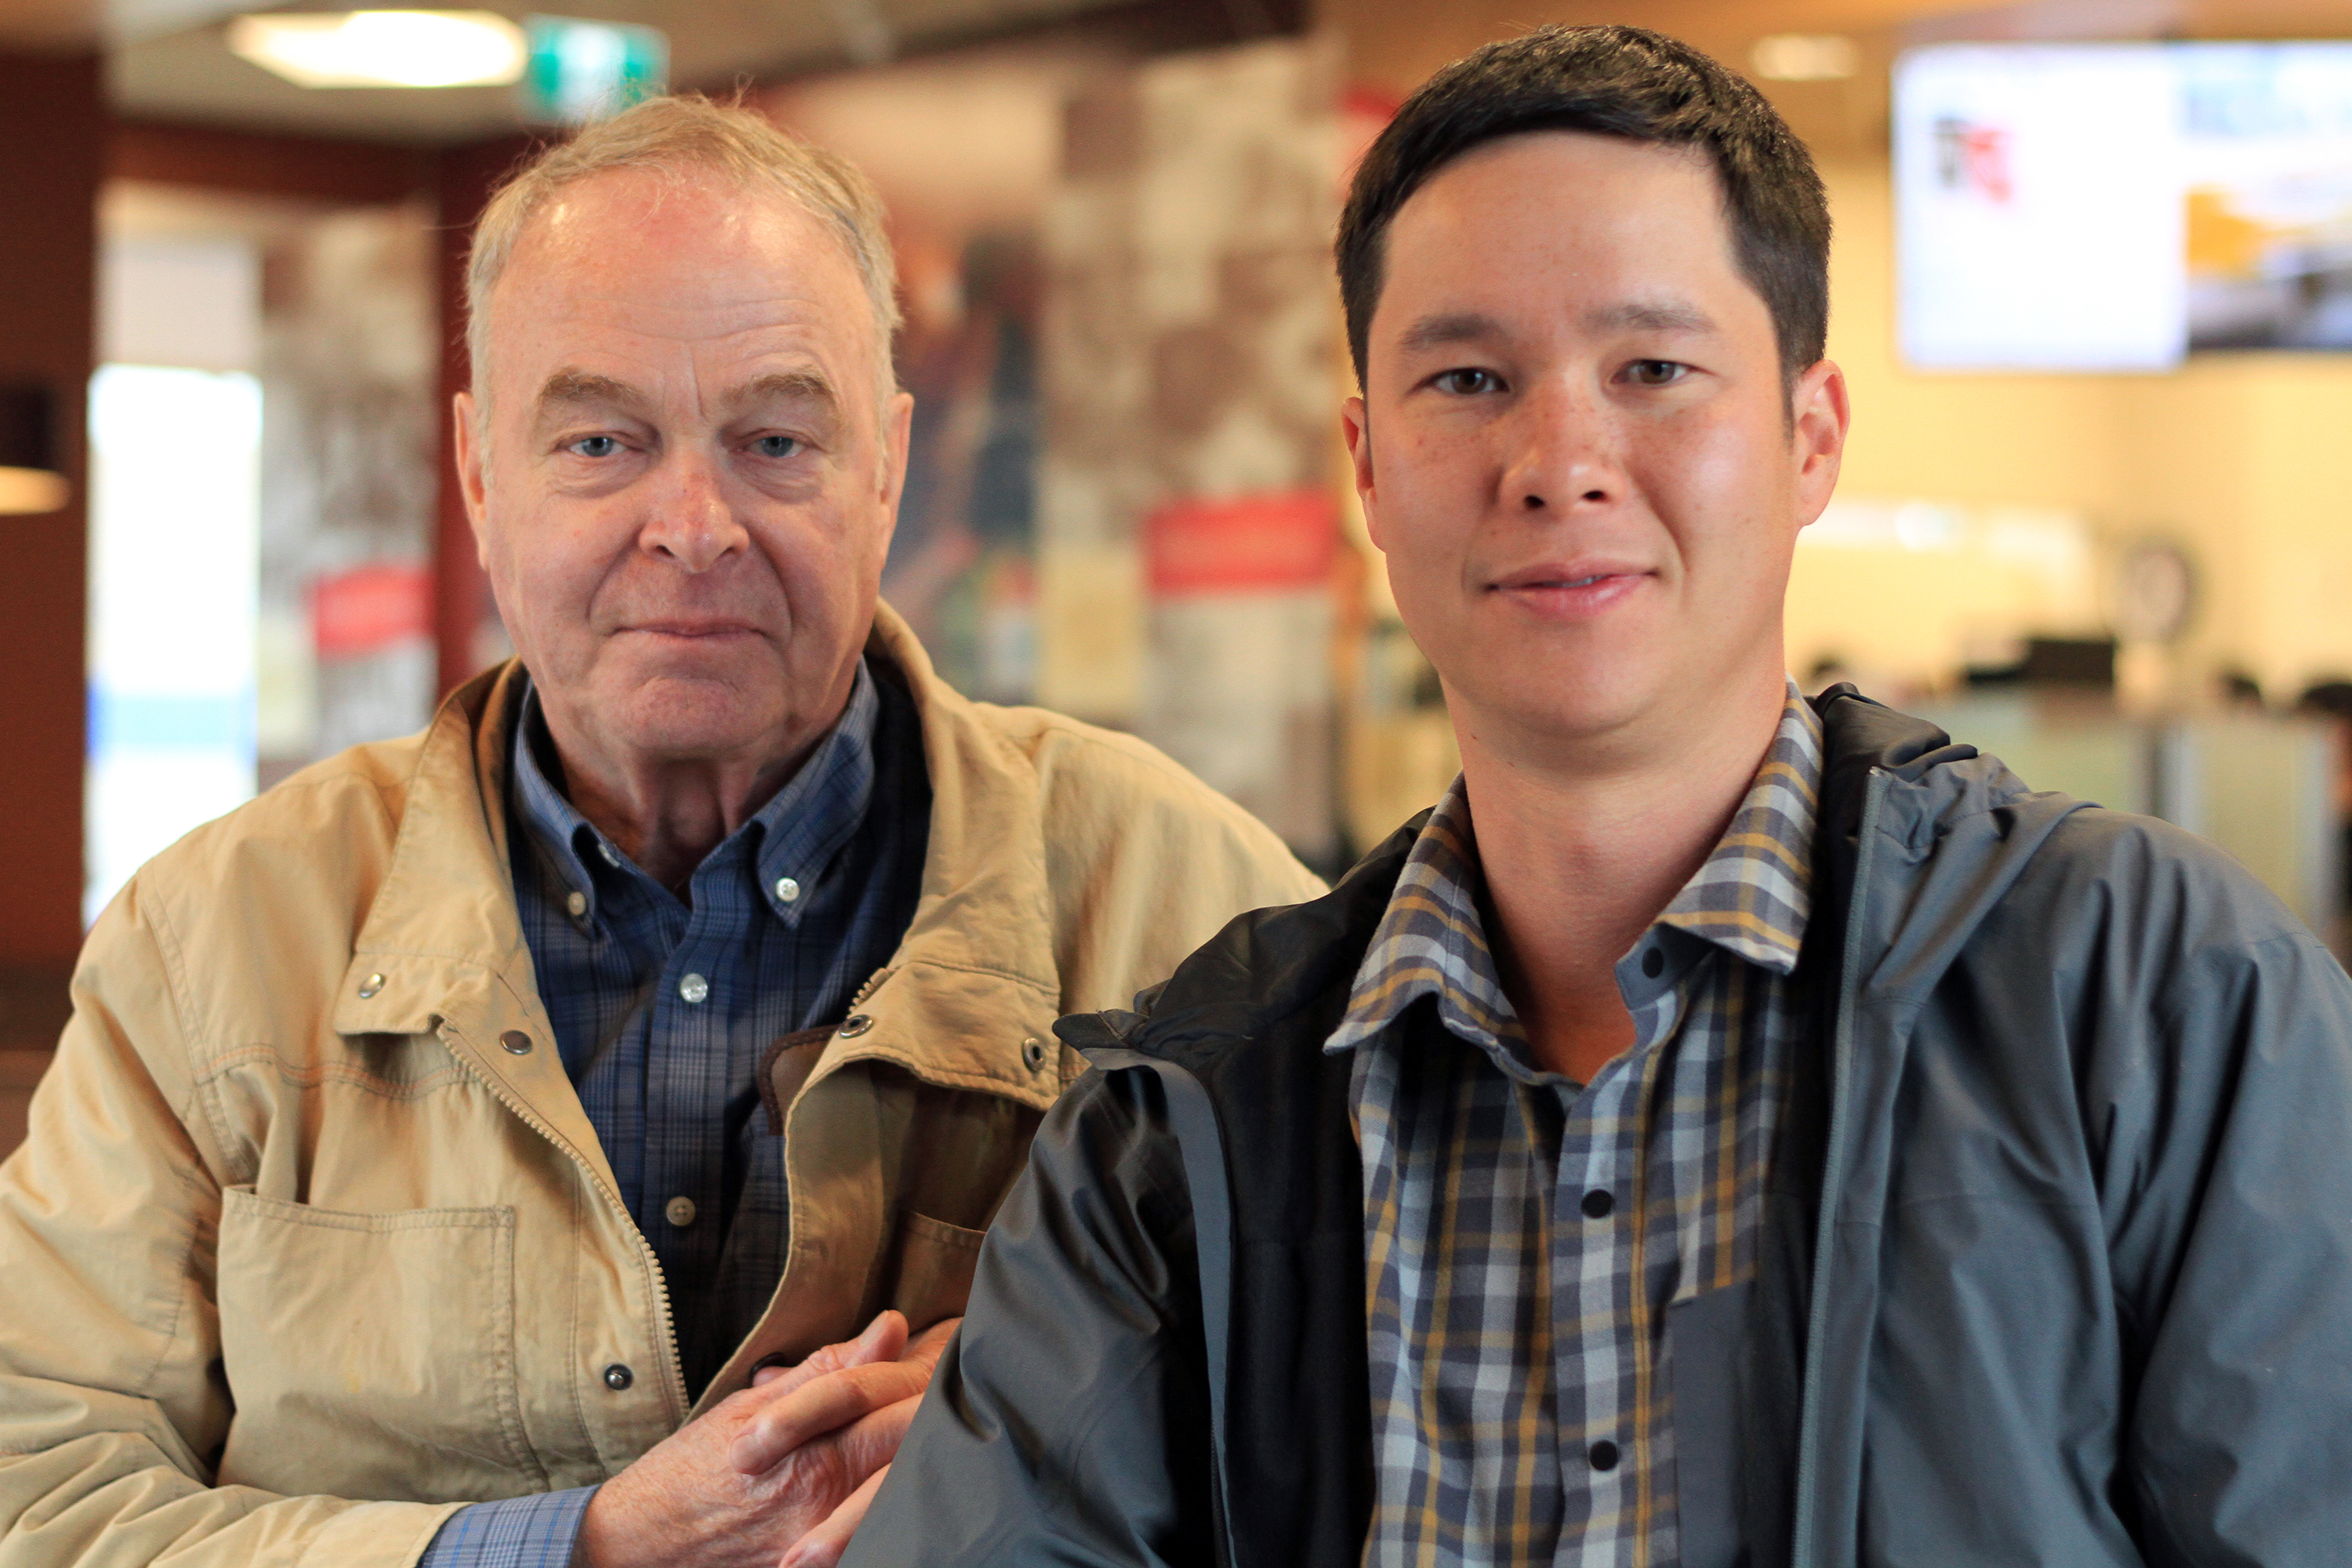 Hall and Wong, right, at Tim Hortons in June. The two call each other mentor and mentee. (Priscilla Hwang/CBC)